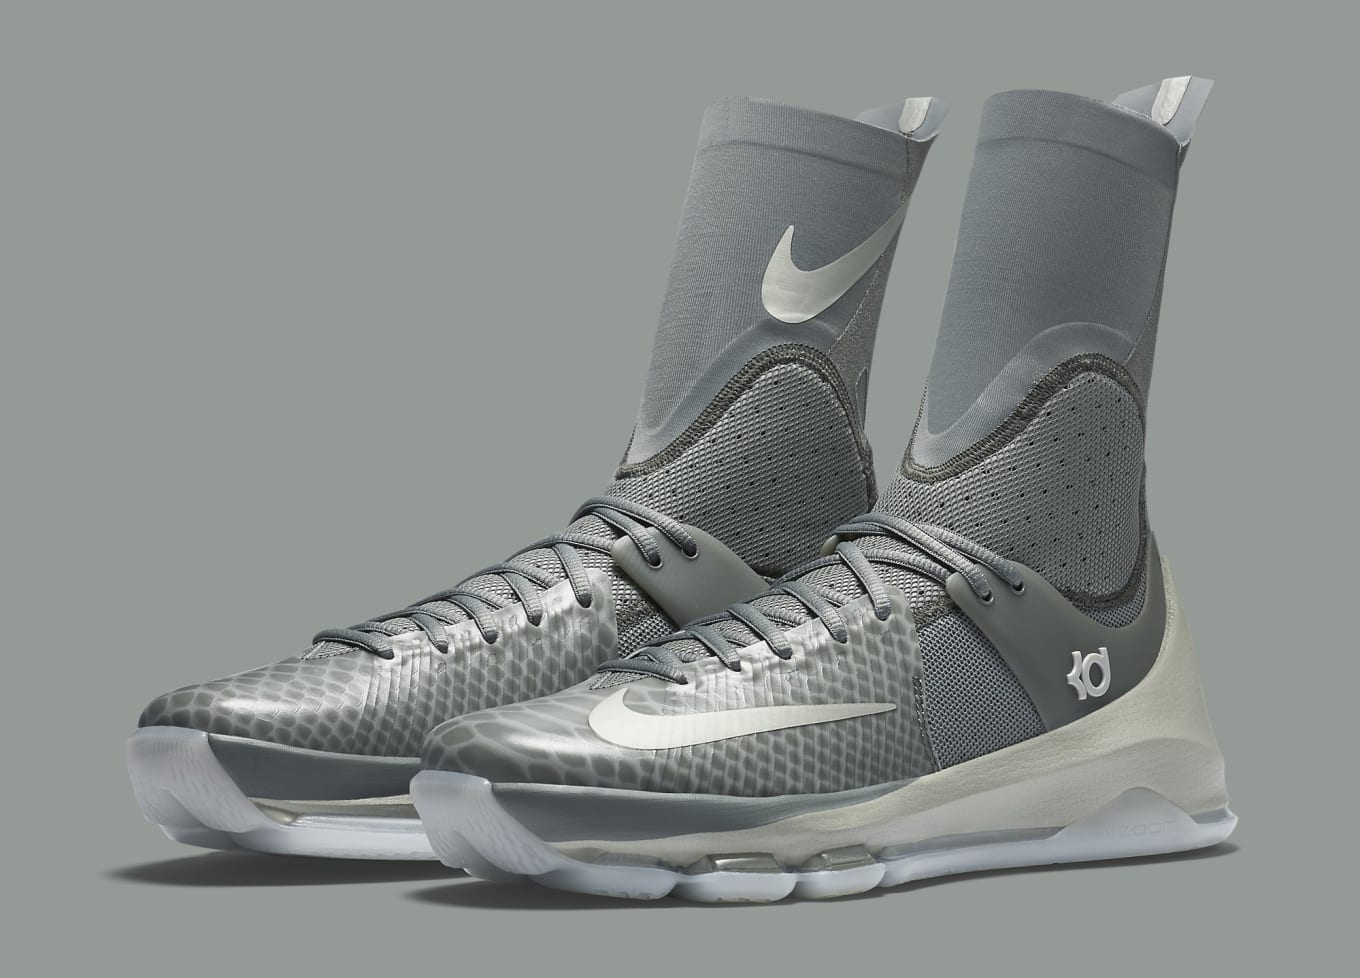 ... coupon code nike kd 8 elite wolf grey ff409 ae5f2 1d36bf318dba